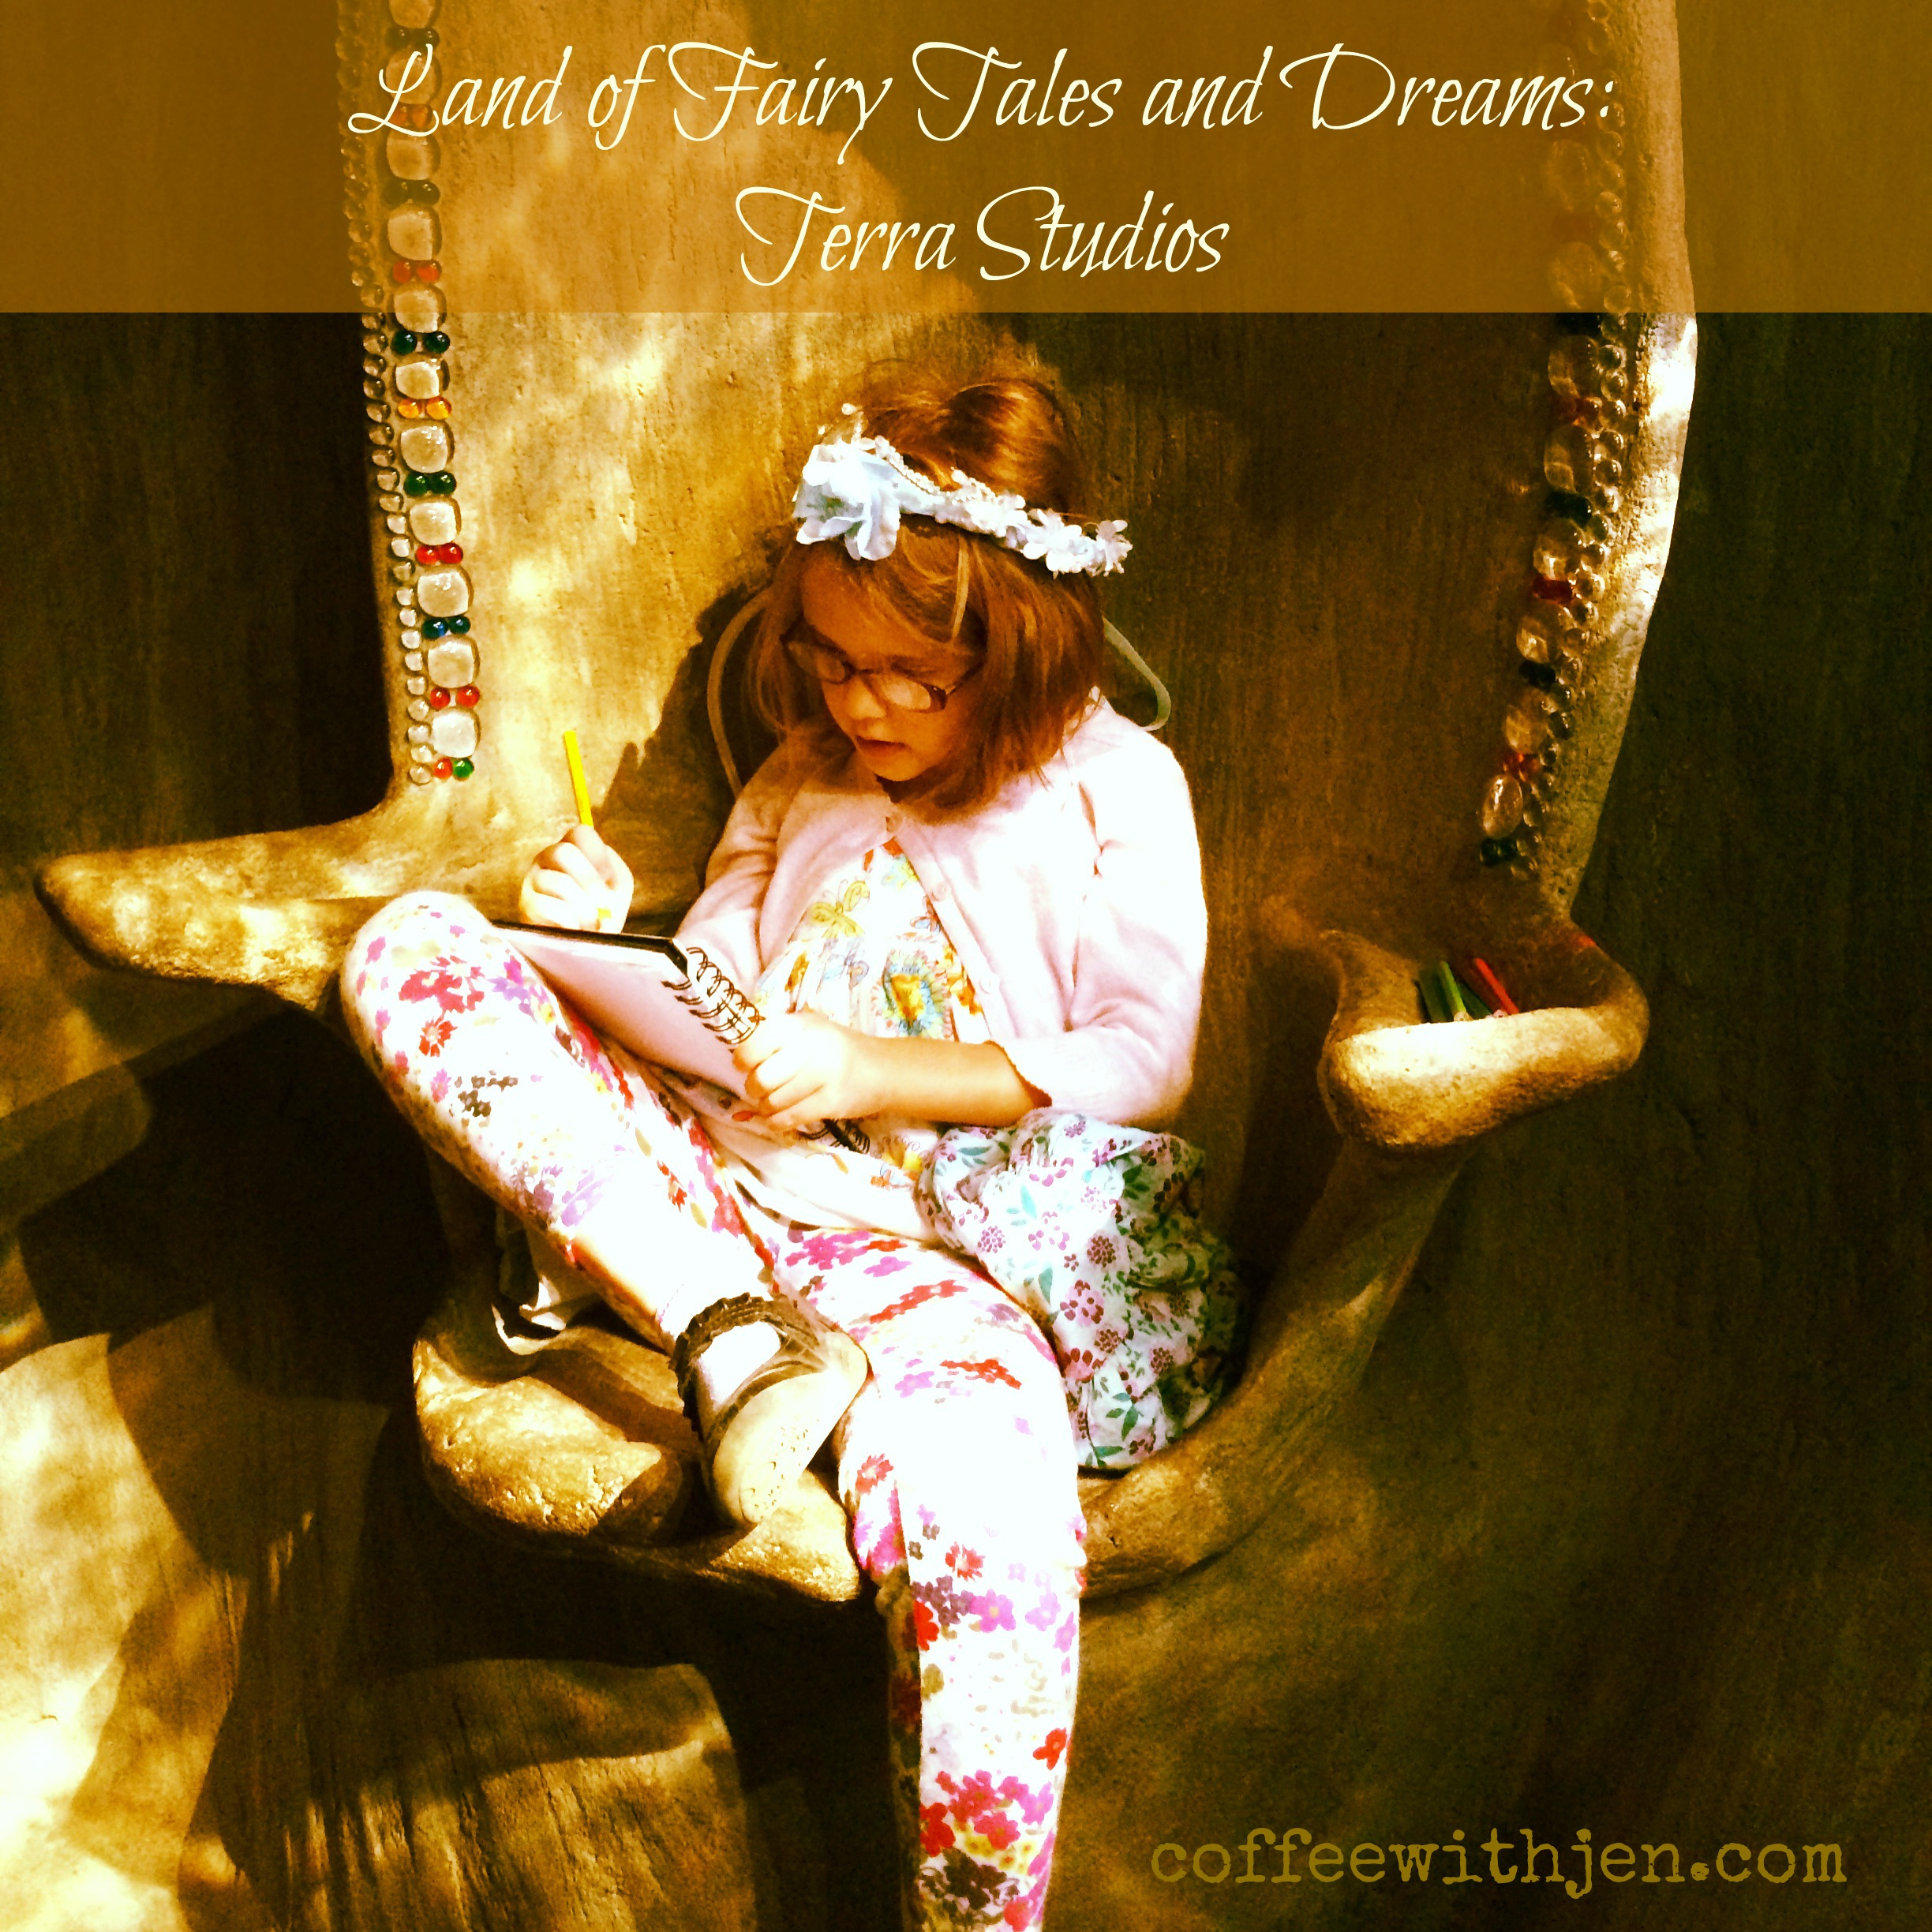 The Land of Fairy Tales and Dreams: Terra Studios